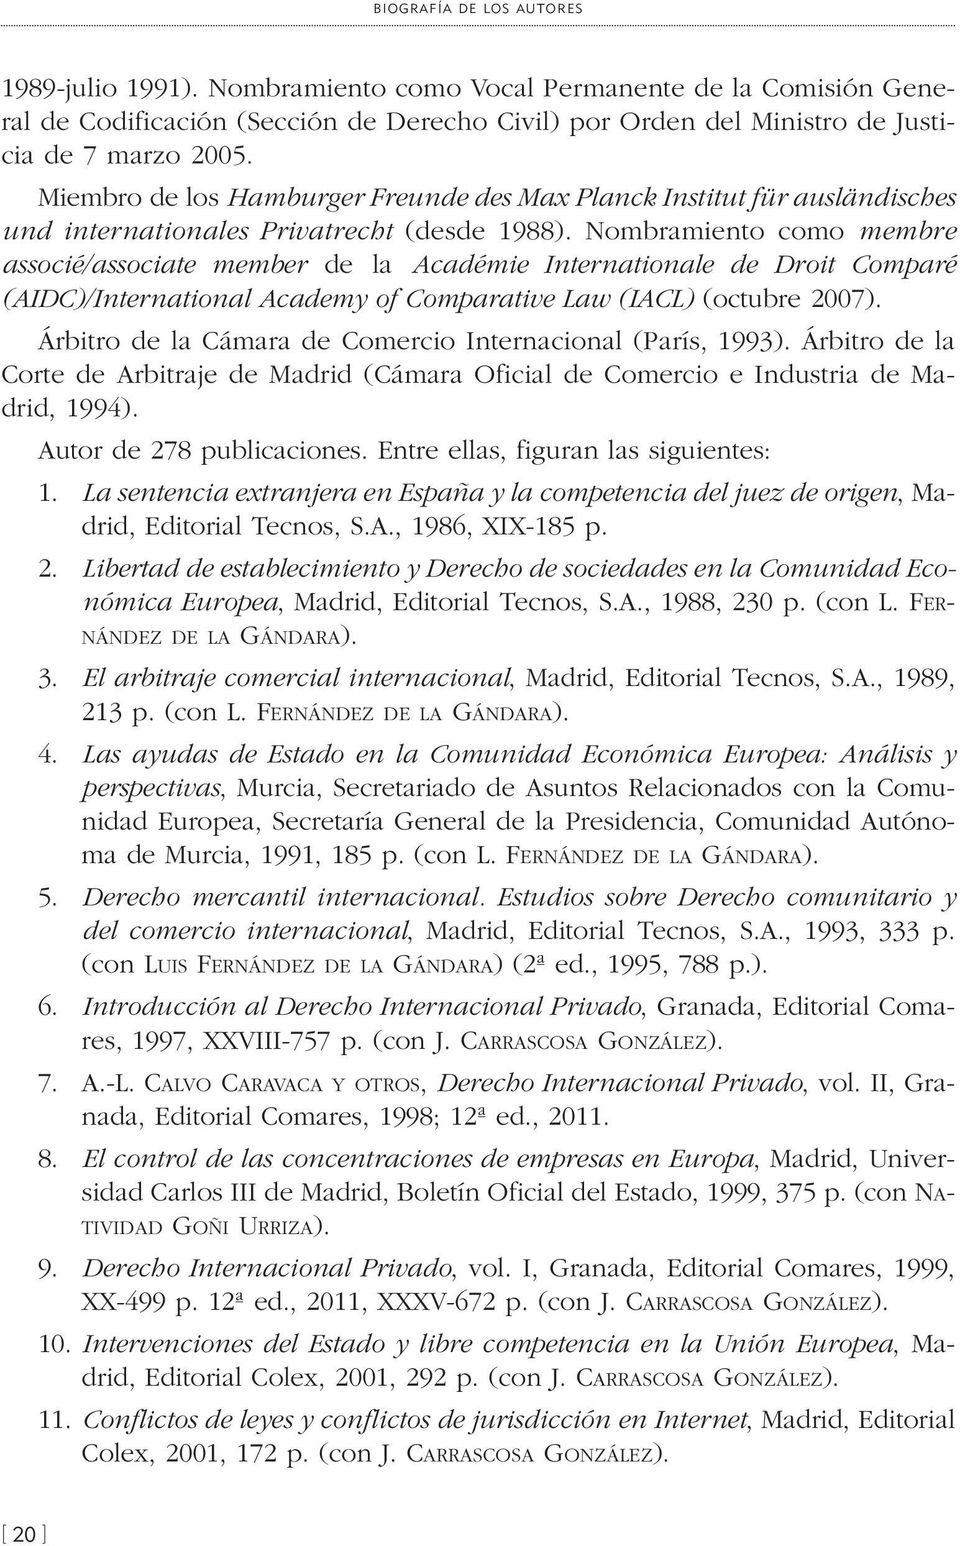 Nombramiento como membre associé/associate member de la Académie Internationale de Droit Comparé (AIDC)/International Academy of Comparative Law (IACL) (octubre 2007).